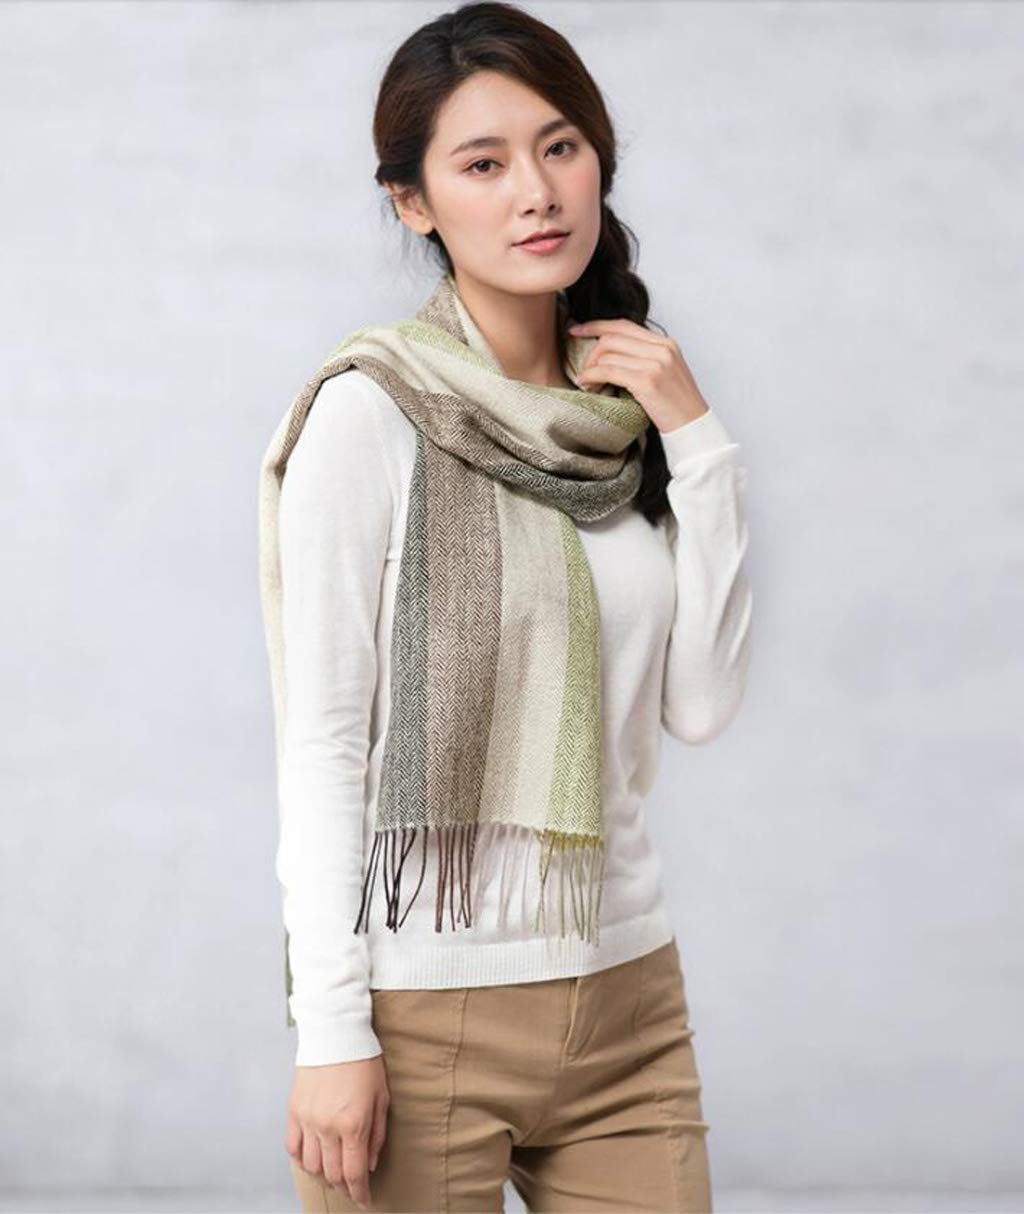 B JUN Wool Scarf Female Winter Warm Thick Versatile Shawl Dual Purpose (color   C)